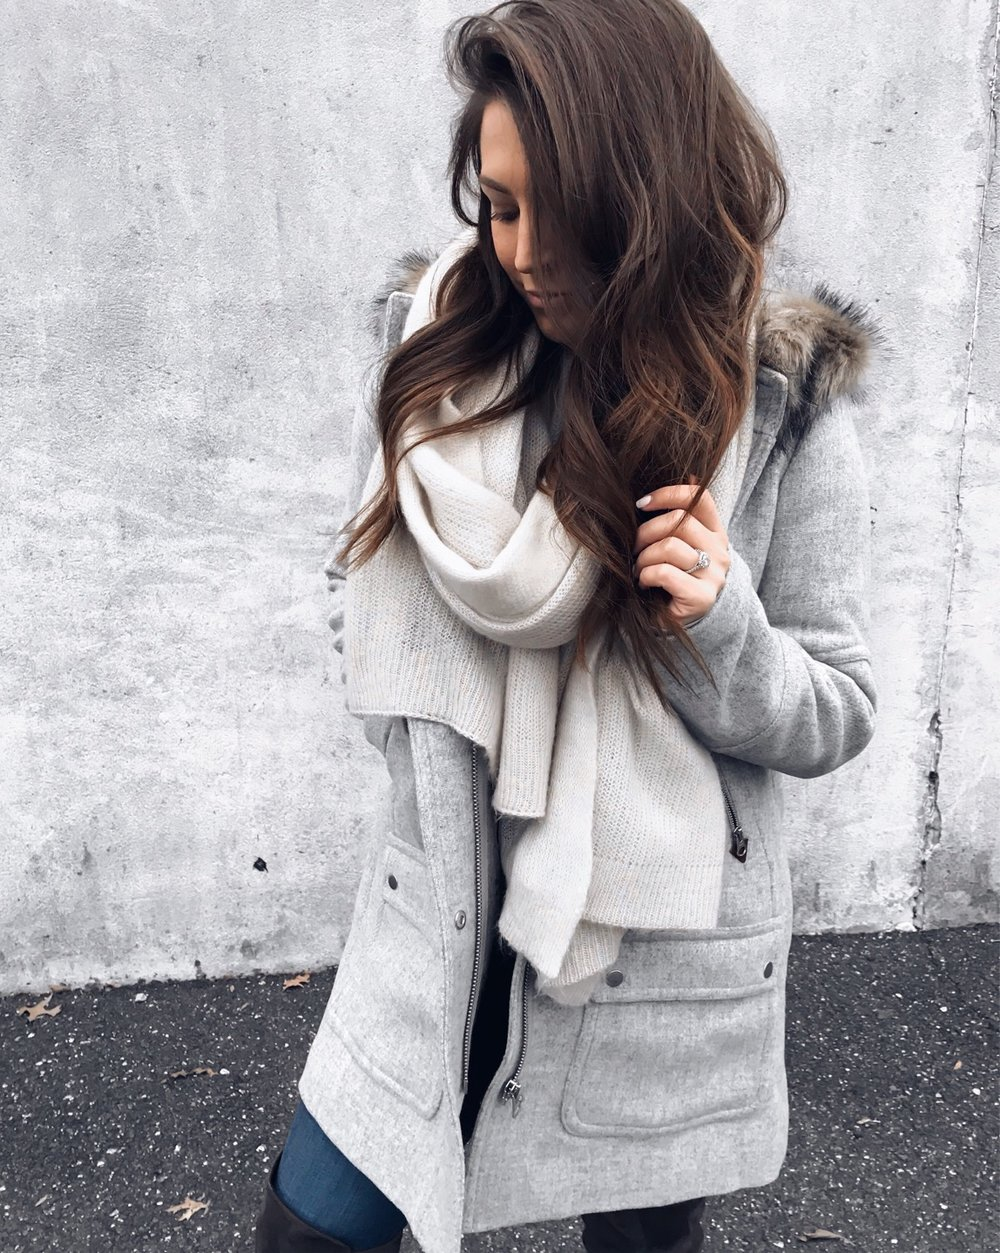 Weekend Sales & Instagram Round Up | Pine Barren Beauty | winter fashion, winter outfit idea, winter coat, jcrew coat, must have jcrew coat, free people scarf, winter essentials